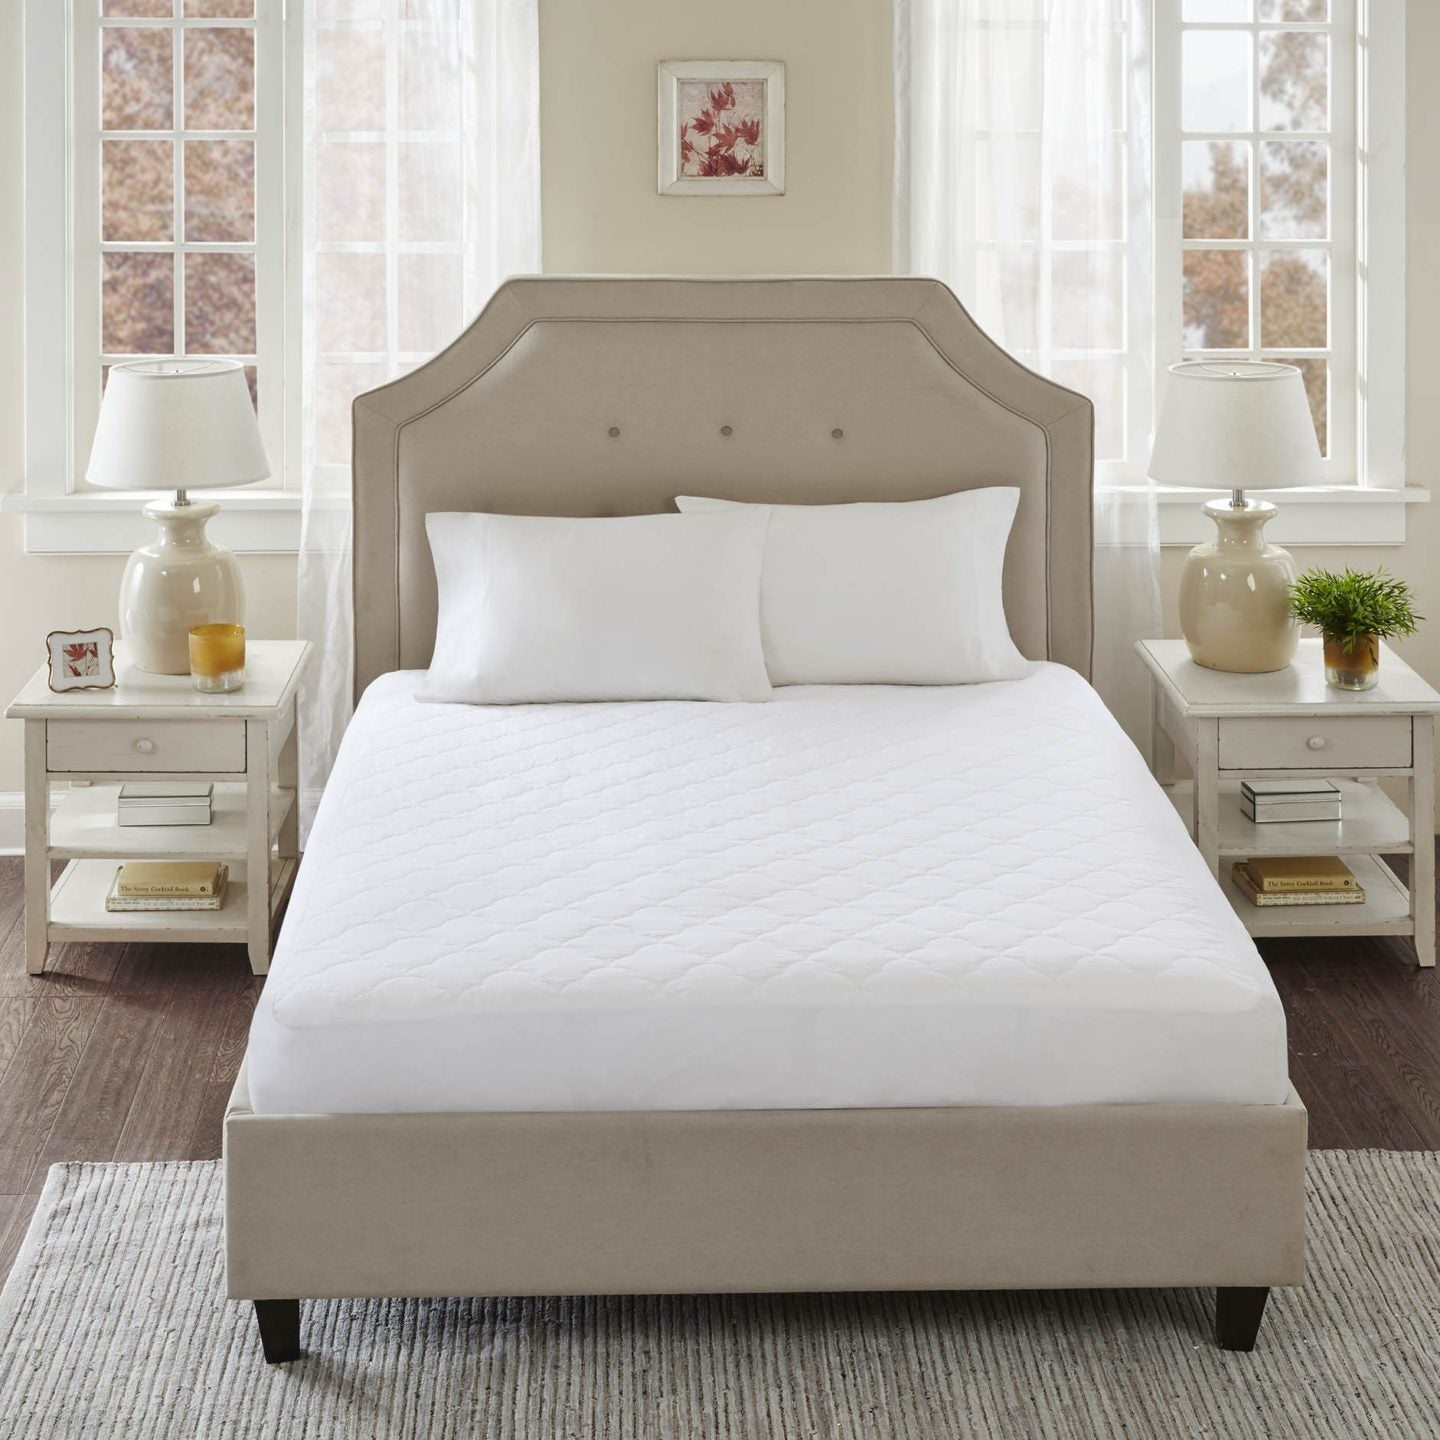 Mattress pads and toppers for platform beds